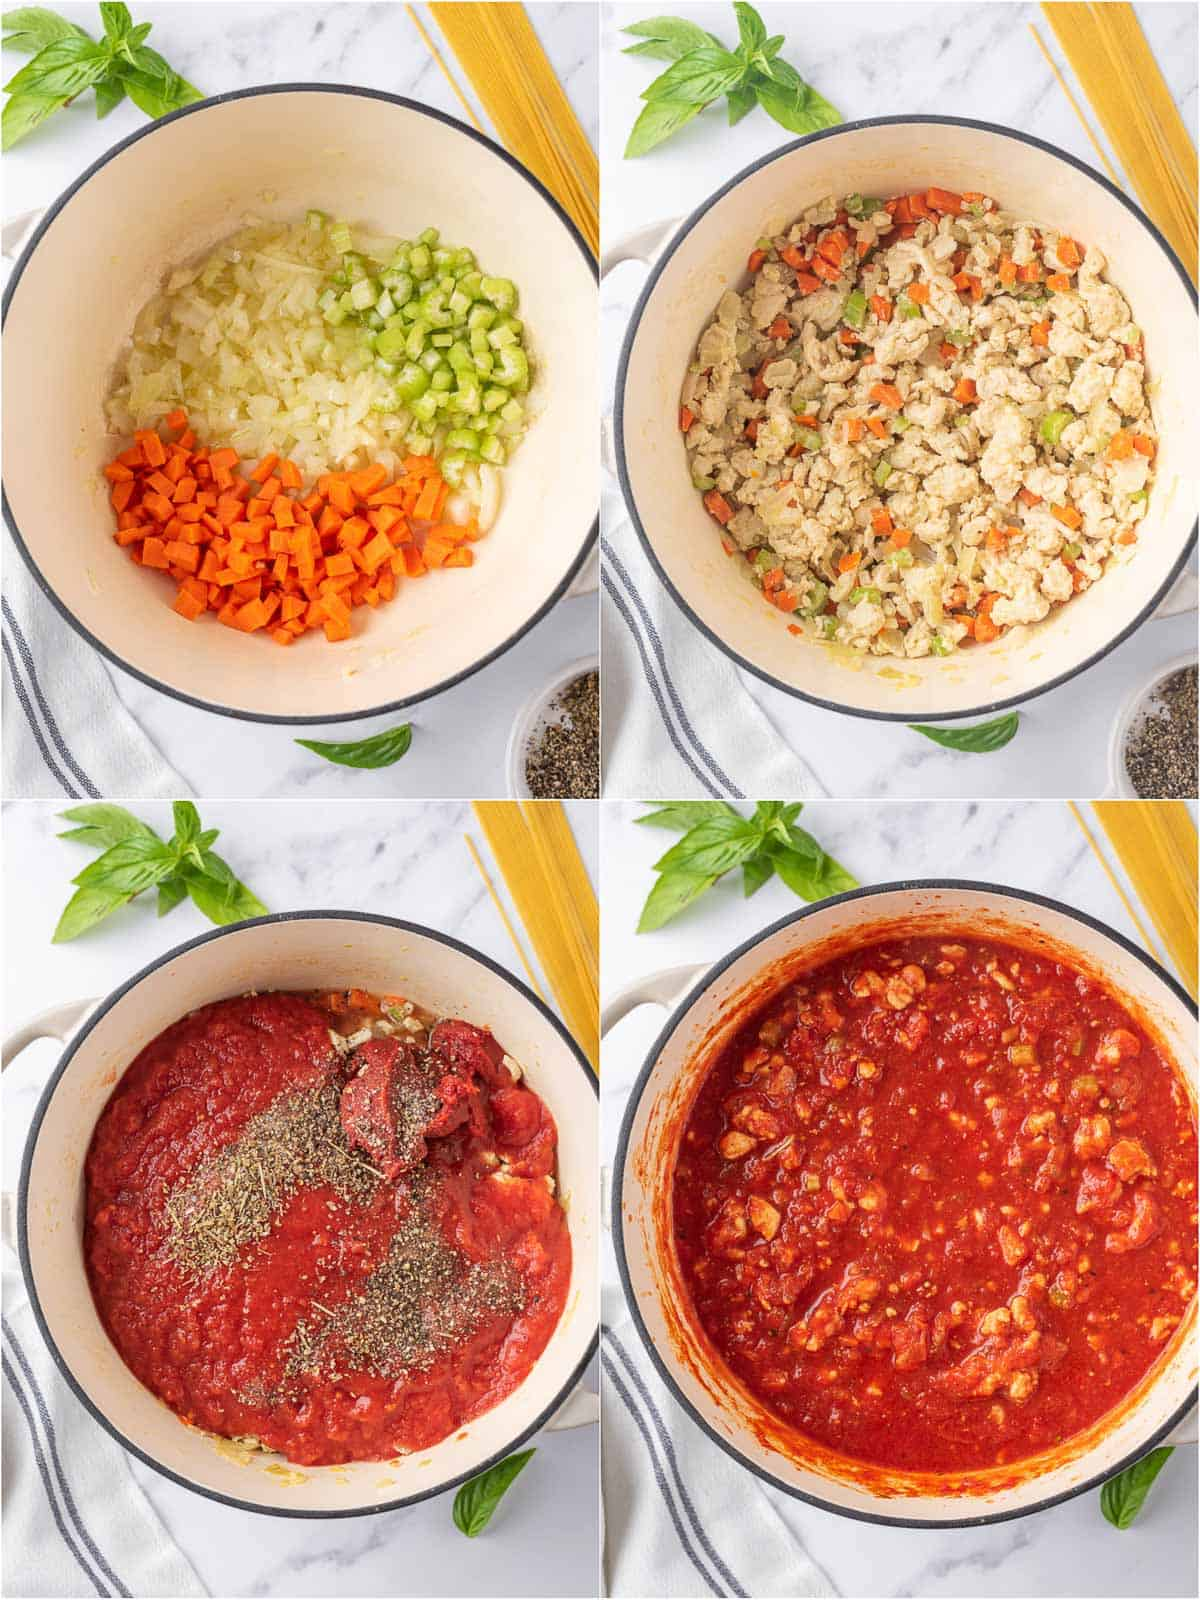 process shots showing how to make the spaghetti sauce